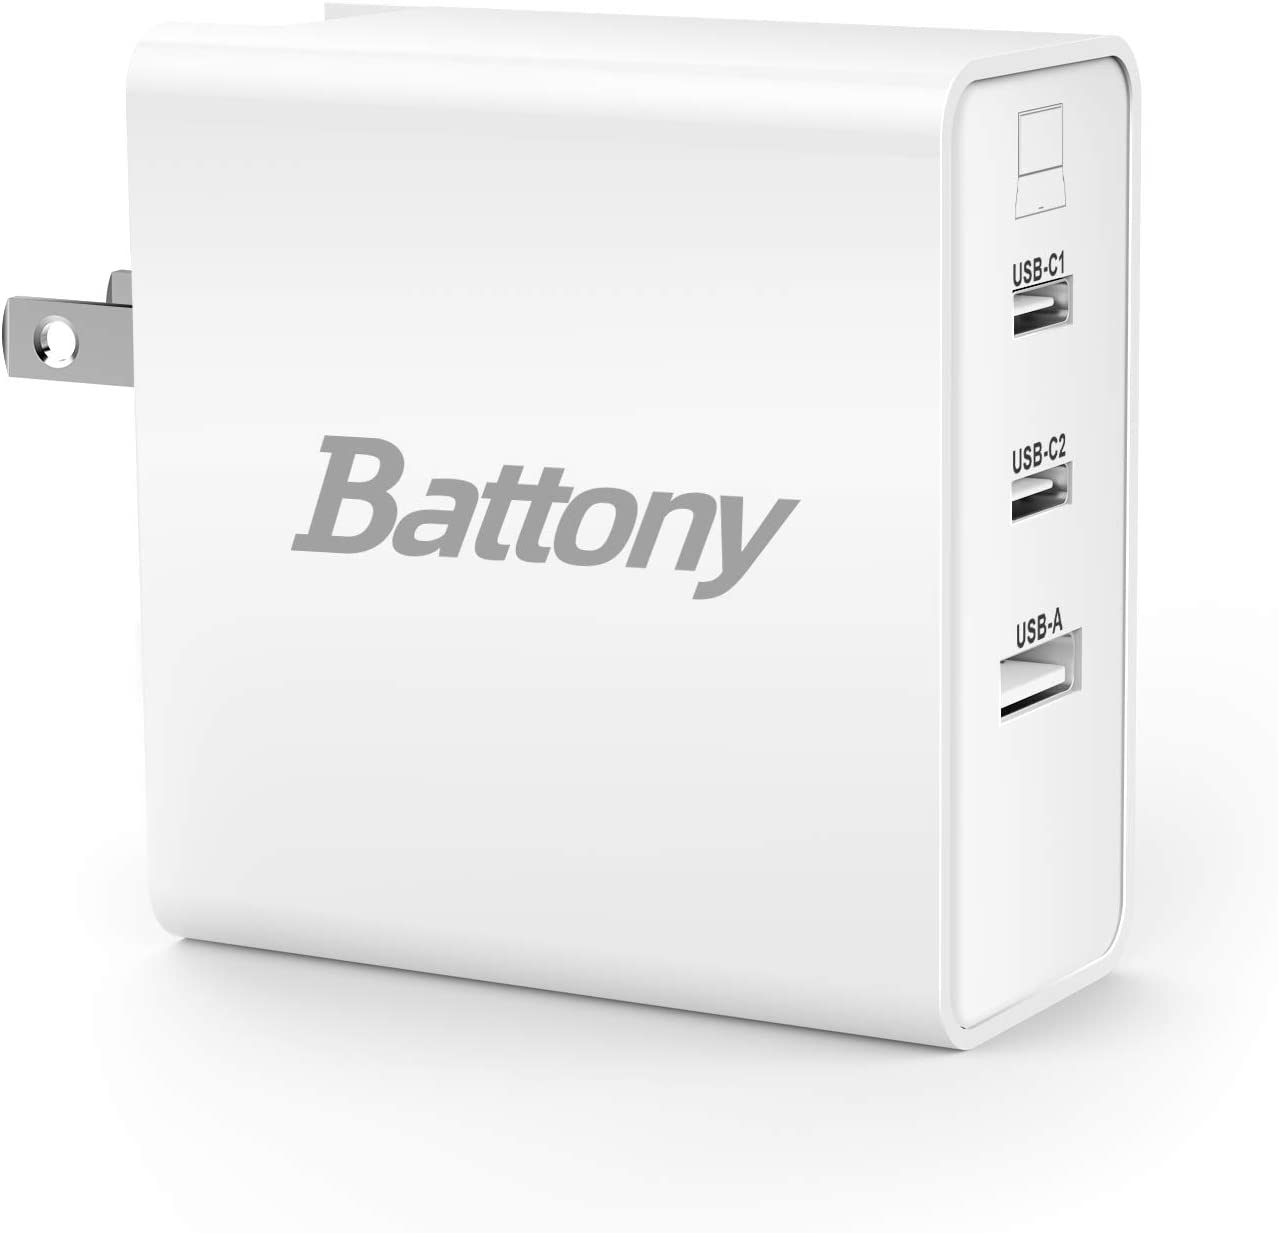 BATTONY USB C Charger 65W 3-Port USB C Wall Charger GaN Tech ETL Certification Compatible with iPhone 12 Mini Pro Max ipad MacBook Pro Air Galaxy and More